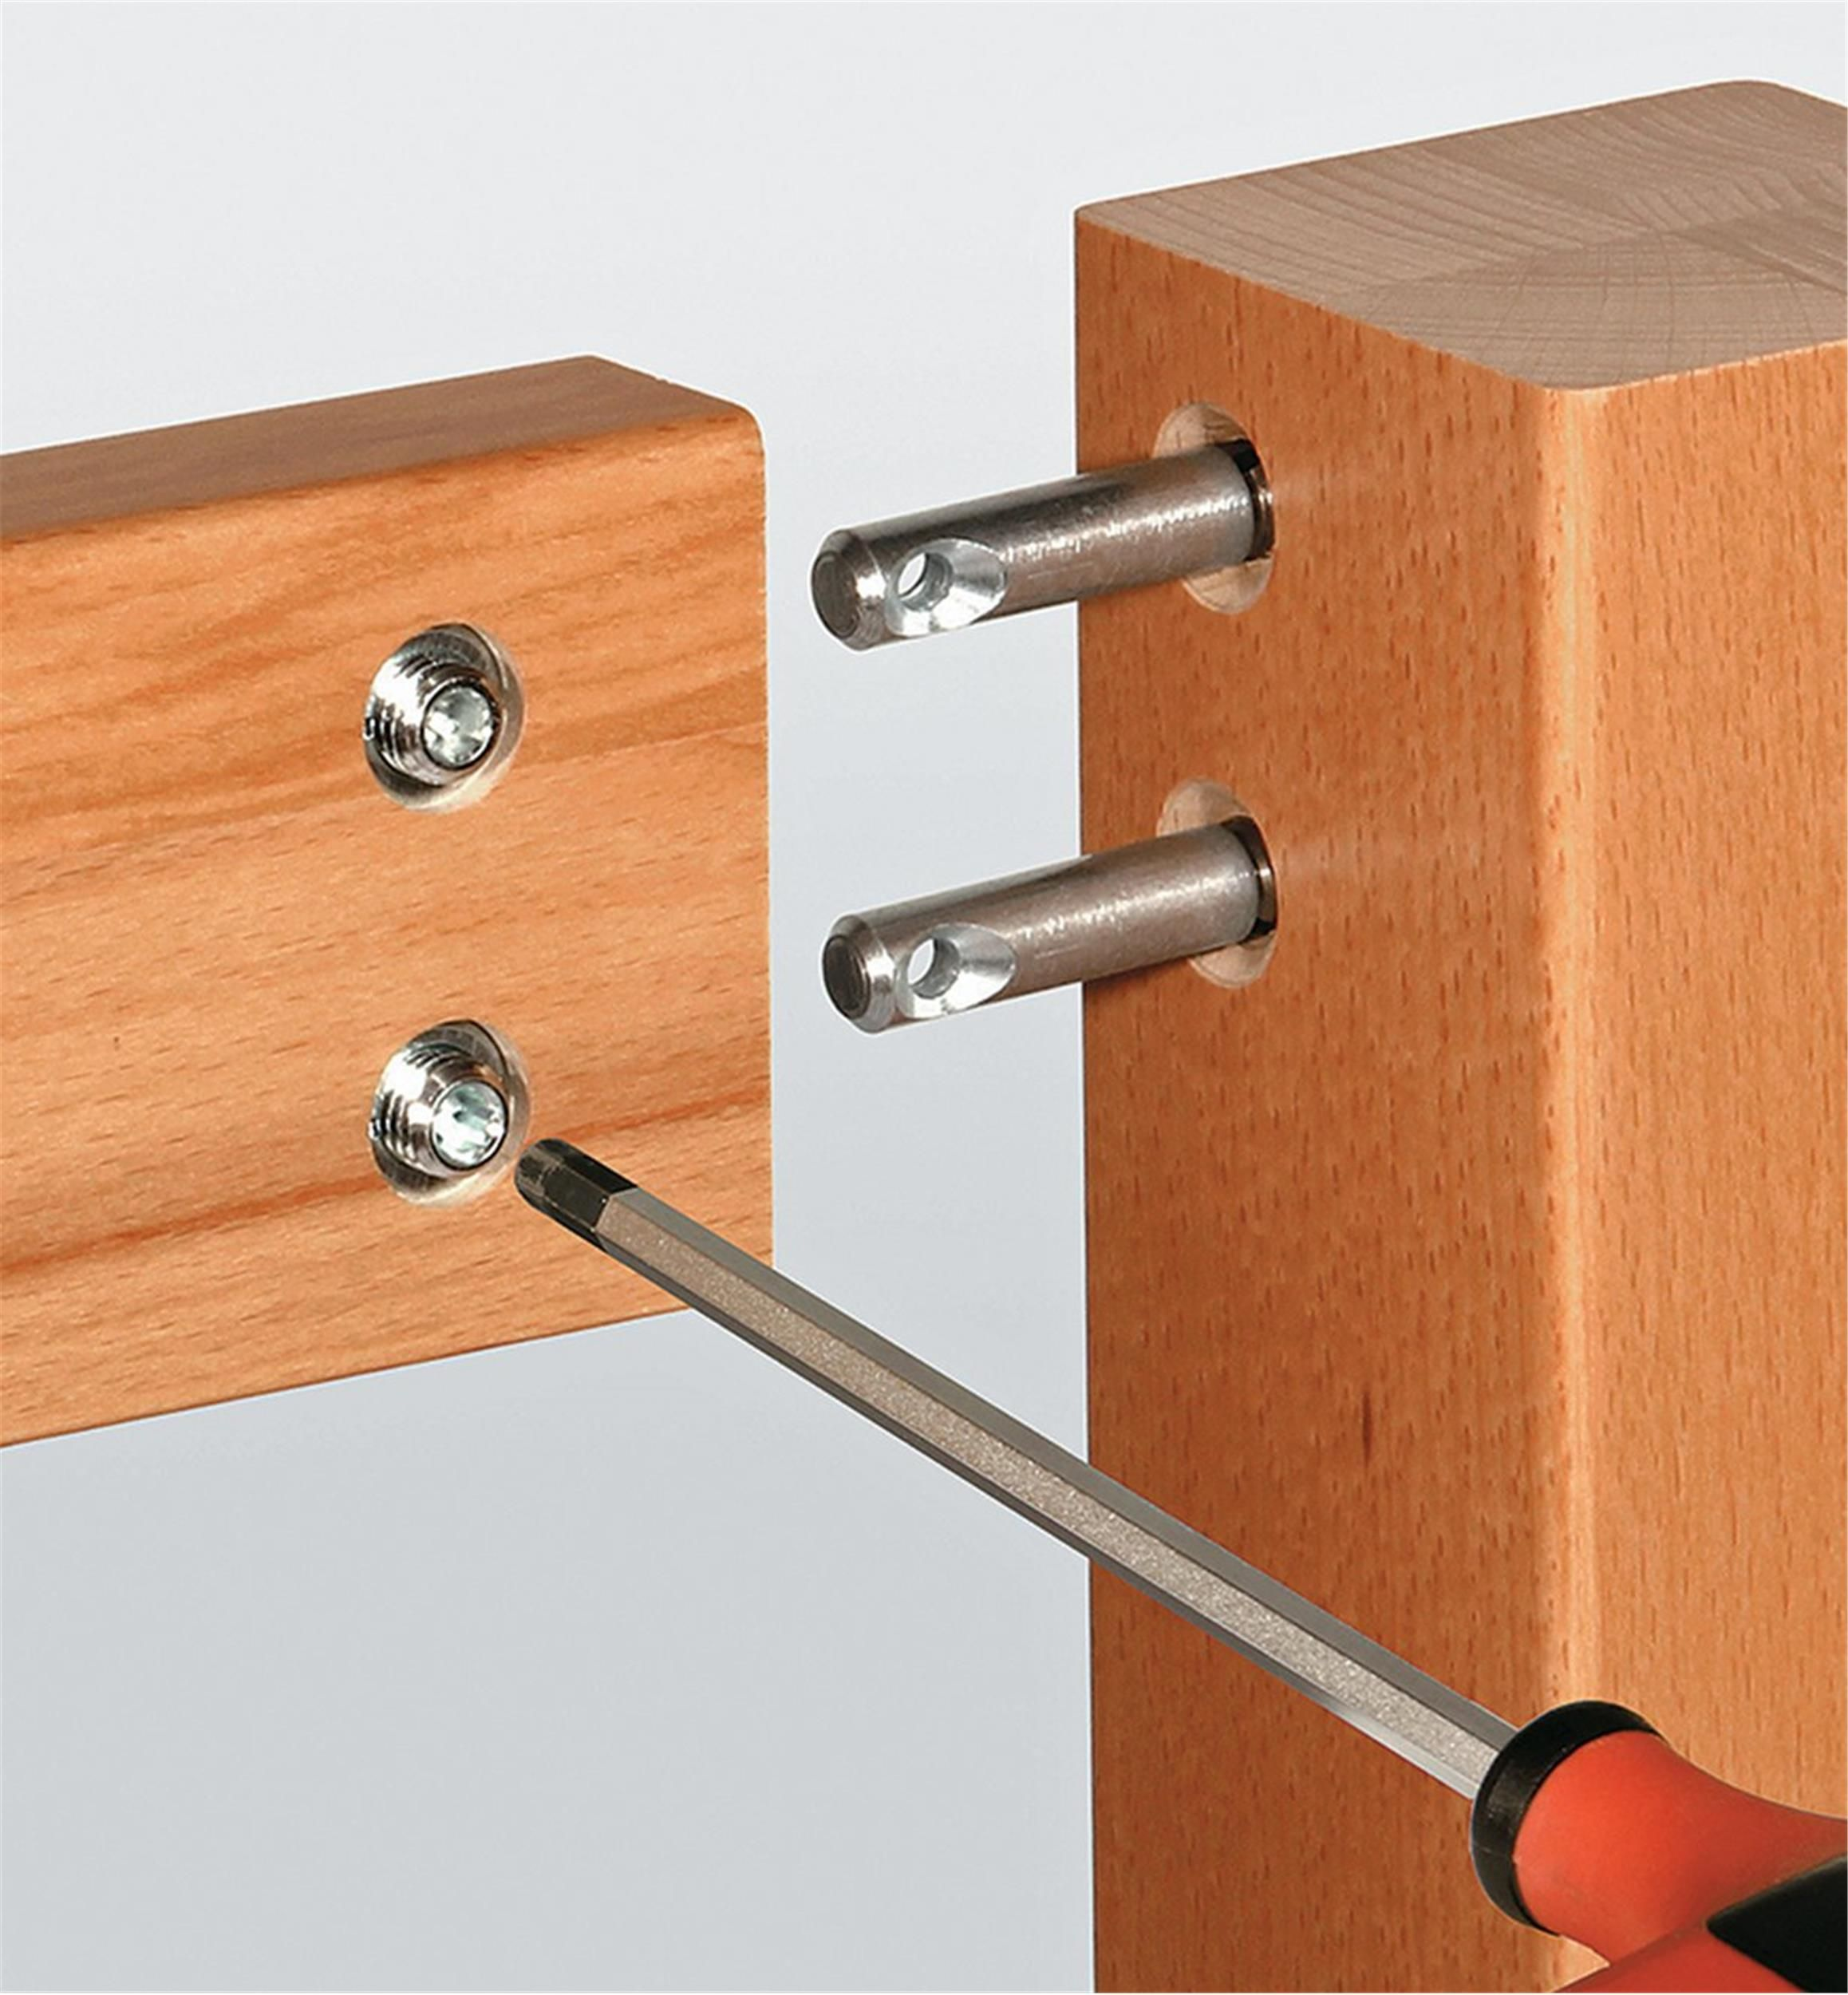 Quick Connect Fittings Connection Hardware Fasteners Wood Joints